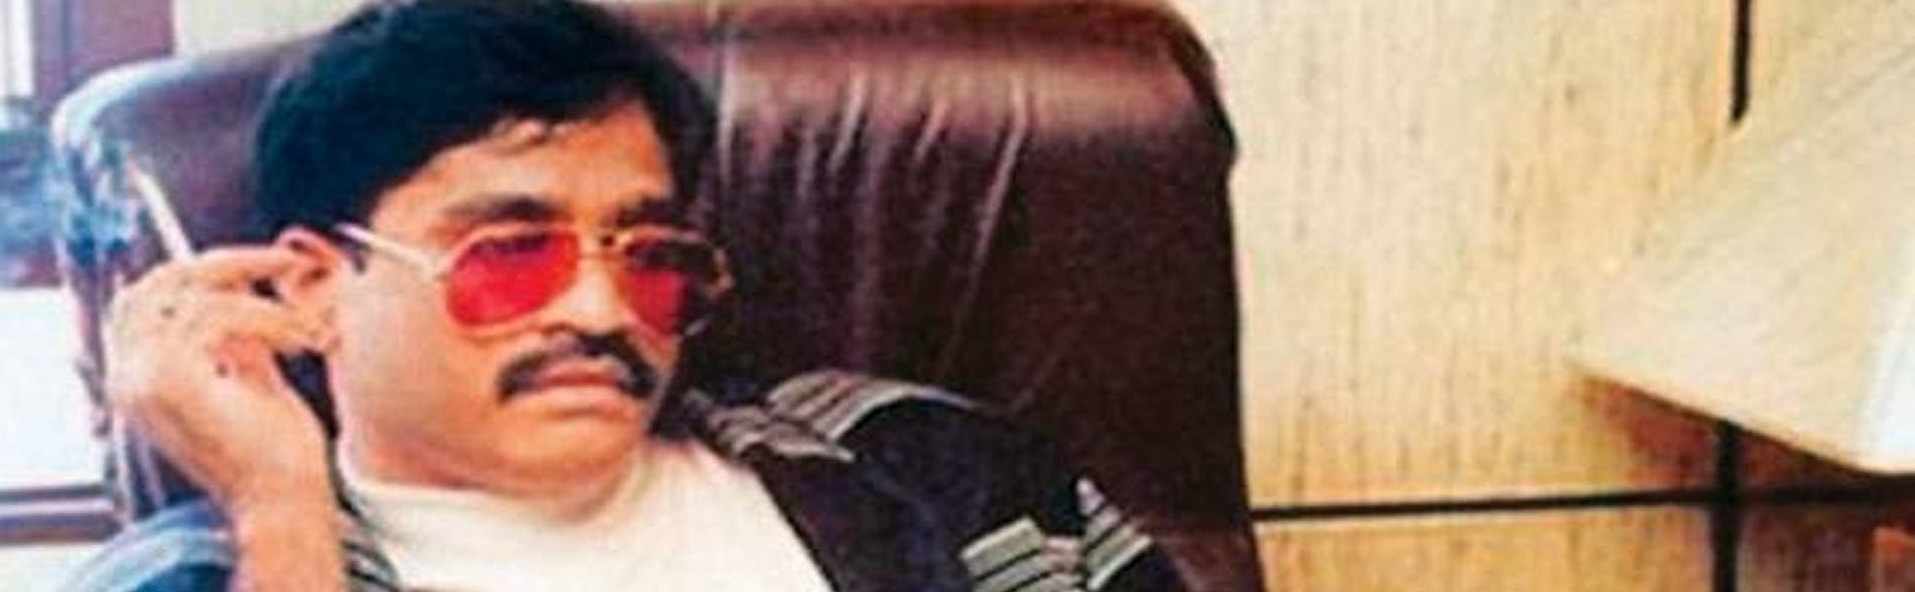 US Money Laundering Report Drops Dawood Reference, Hits India for Ignoring 'Investigative Leads'